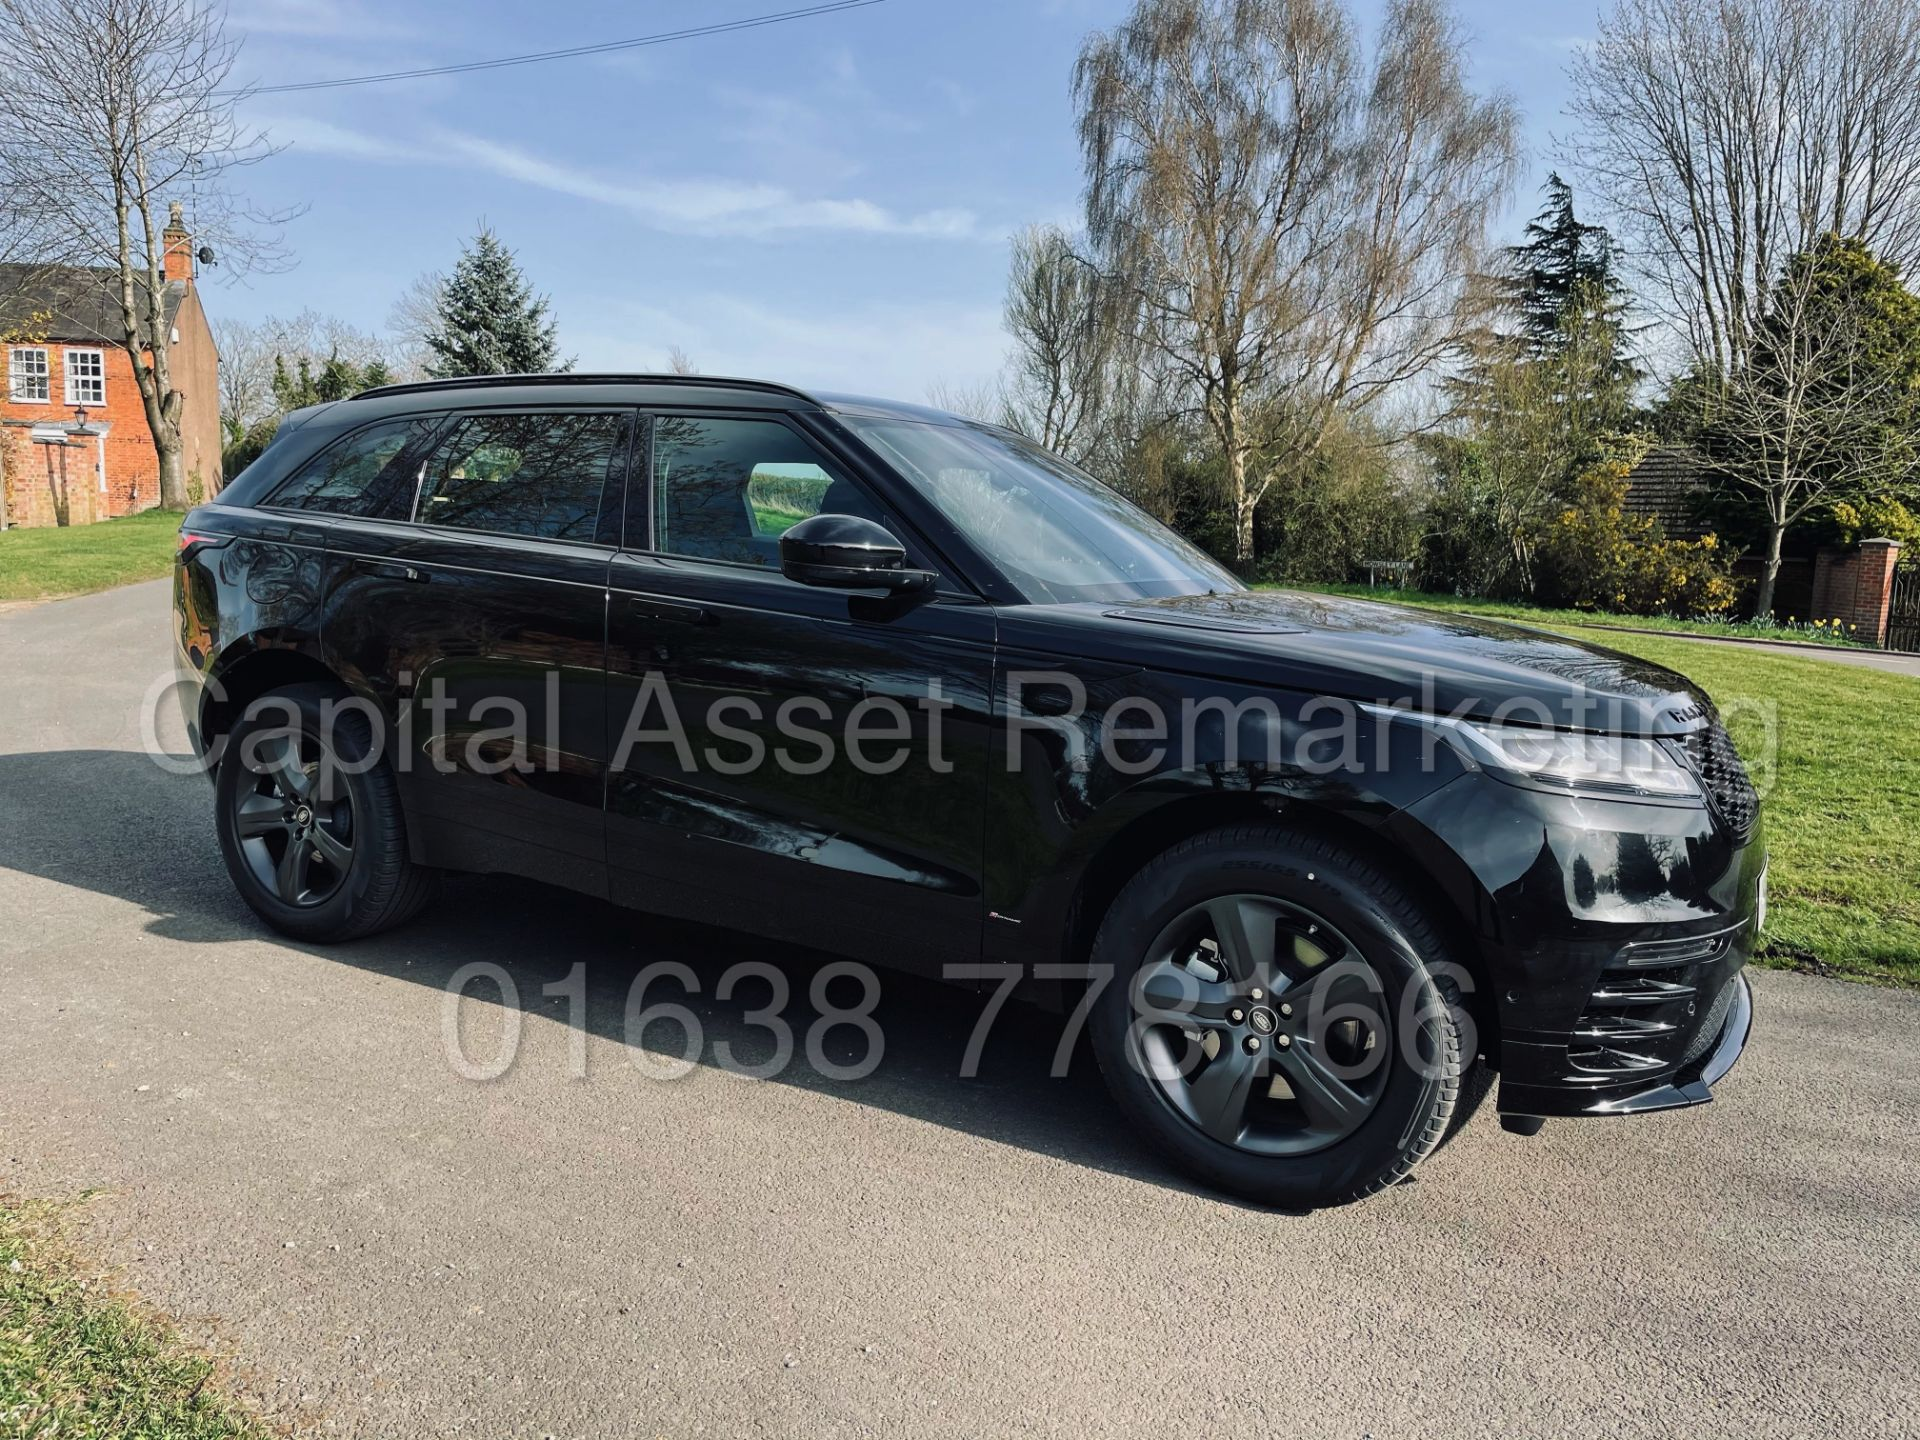 (On Sale) RANGE ROVER VELAR *R-DYNAMIC* SUV (2021) *8 SPEED AUTO - LEATHER* (DELIVERY MILES)